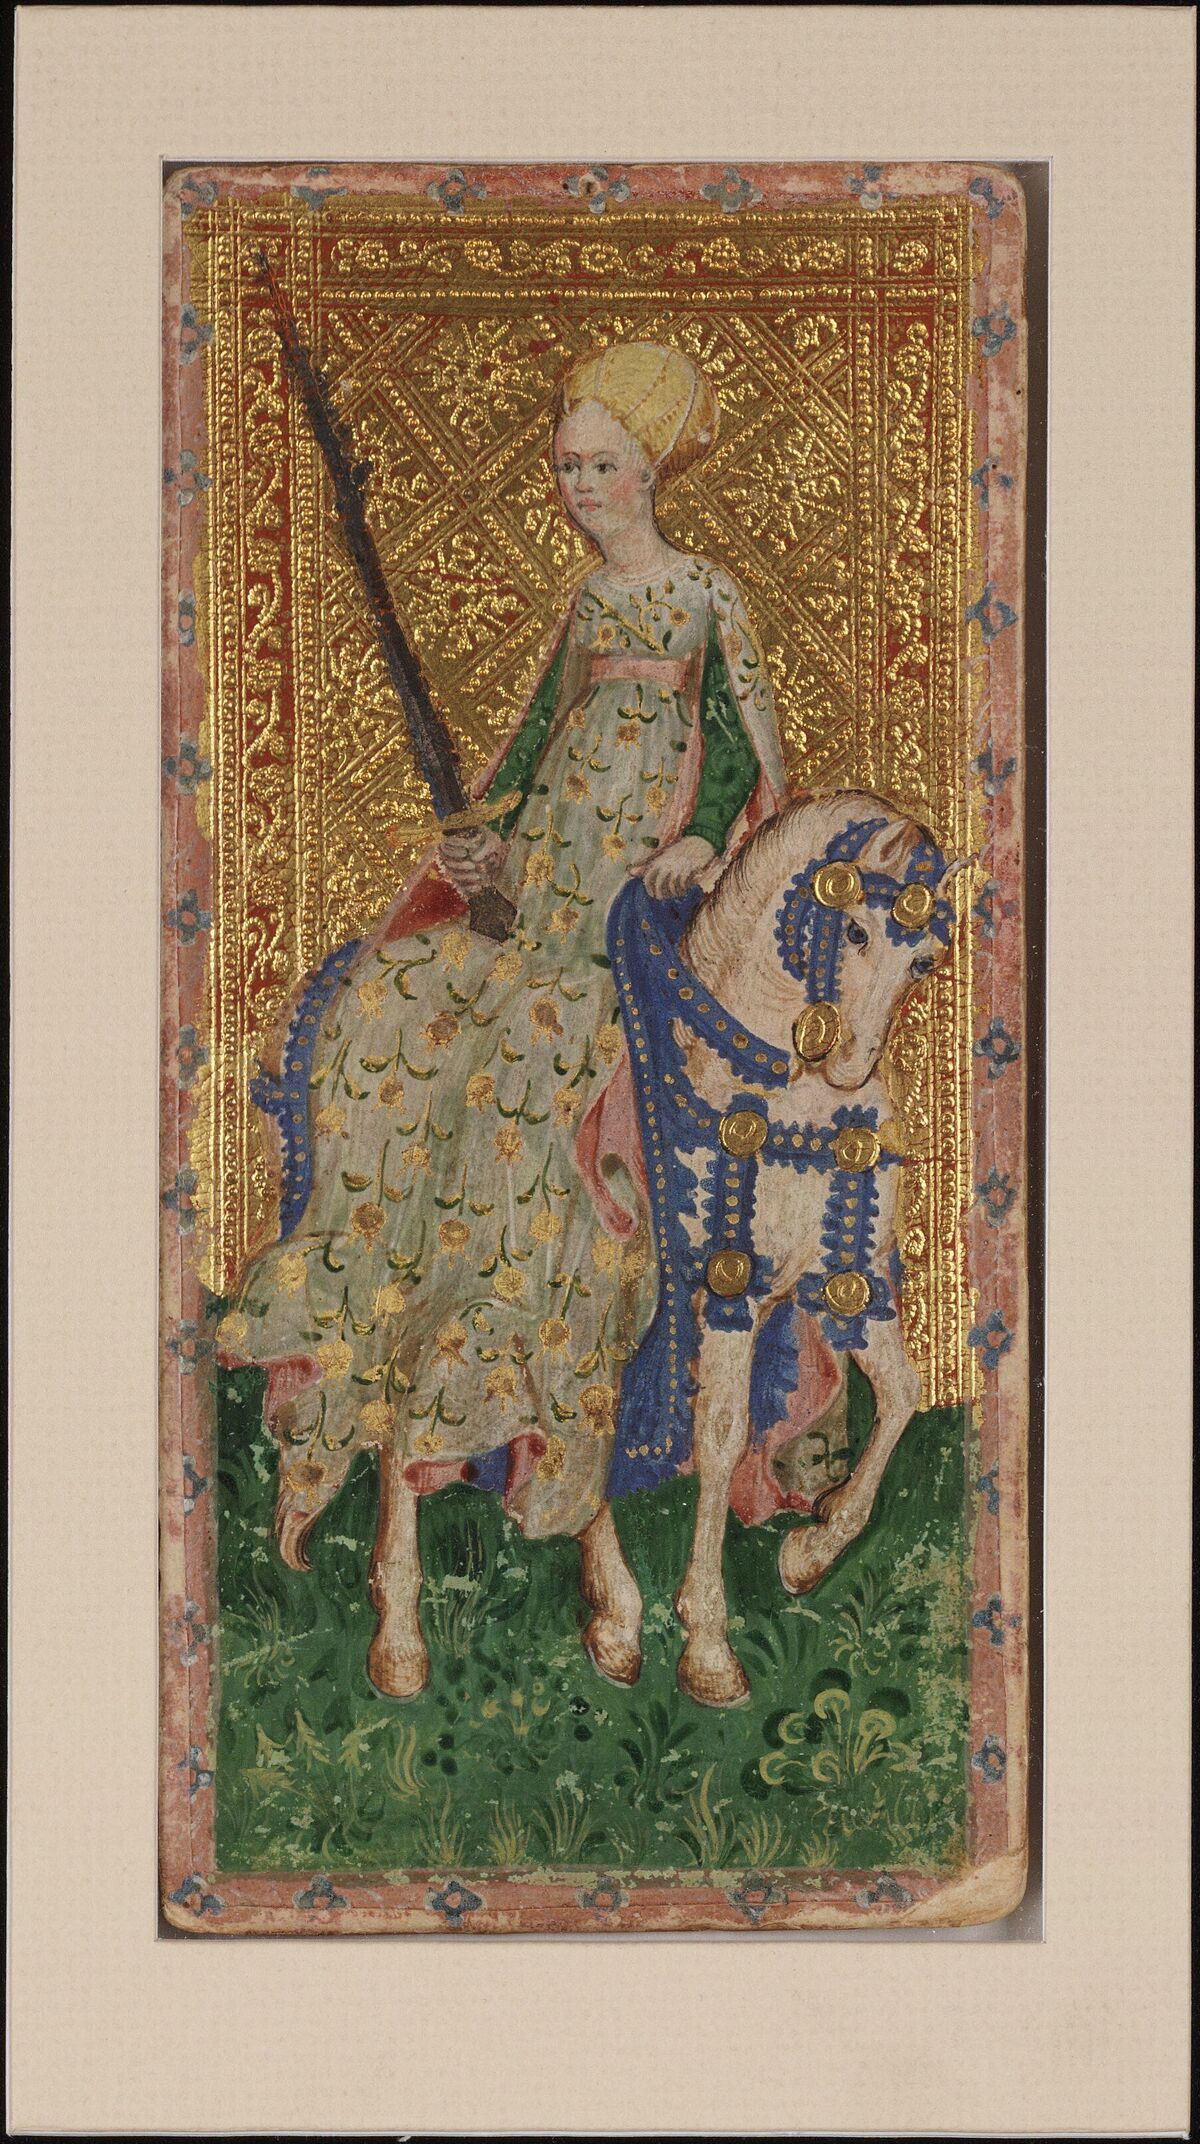 Bembo Bonifacio, Female Knight (Swords), 1428-1447. Visconti Tarot from the Cary Collection of Playing Cards.Courtesy of the Beinecke Rare Book & Manuscript Library at Yale University.